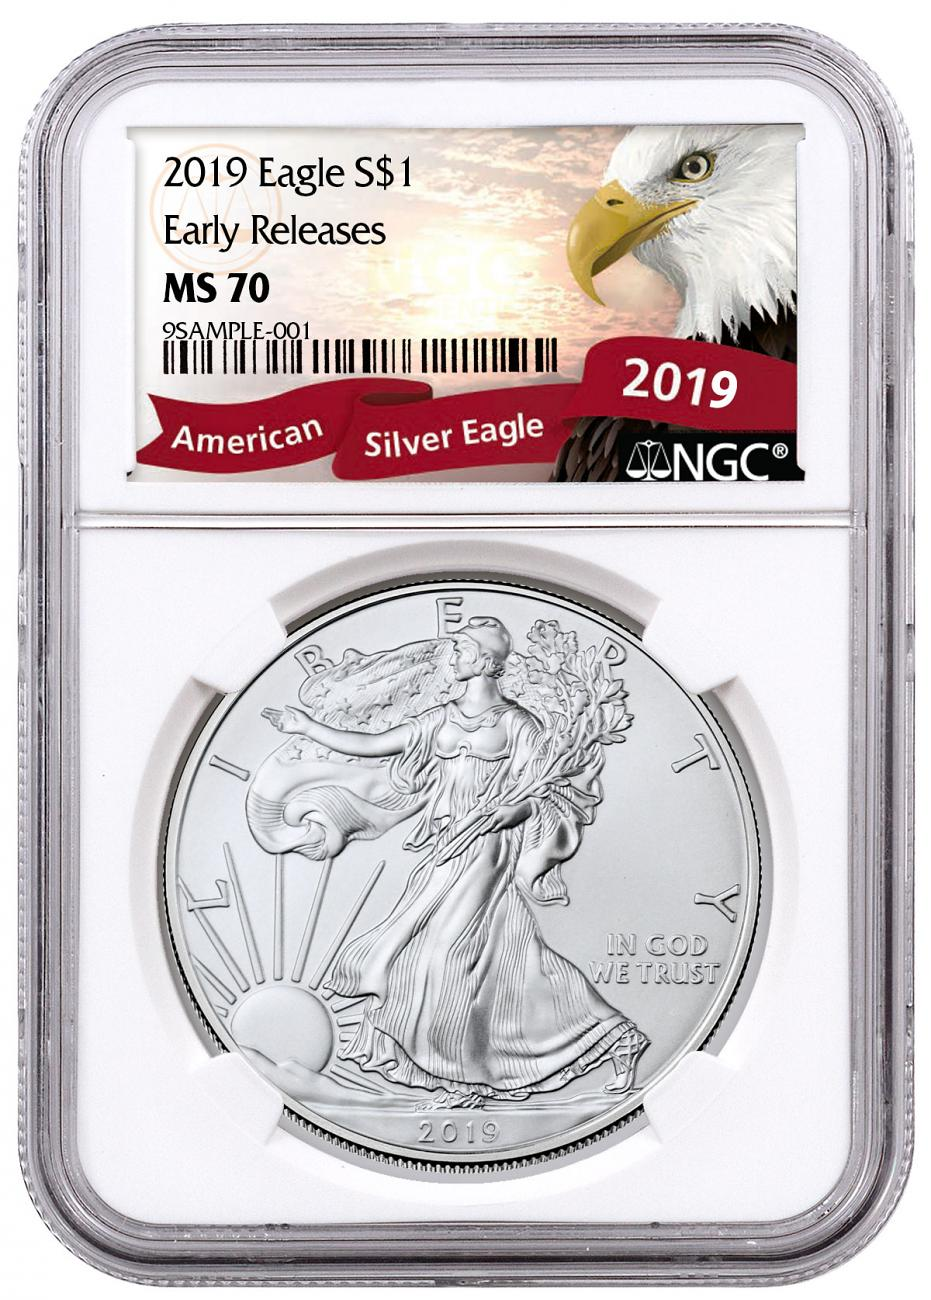 2019 American Silver Eagle NGC MS70 ER Exclusive Eagle Label